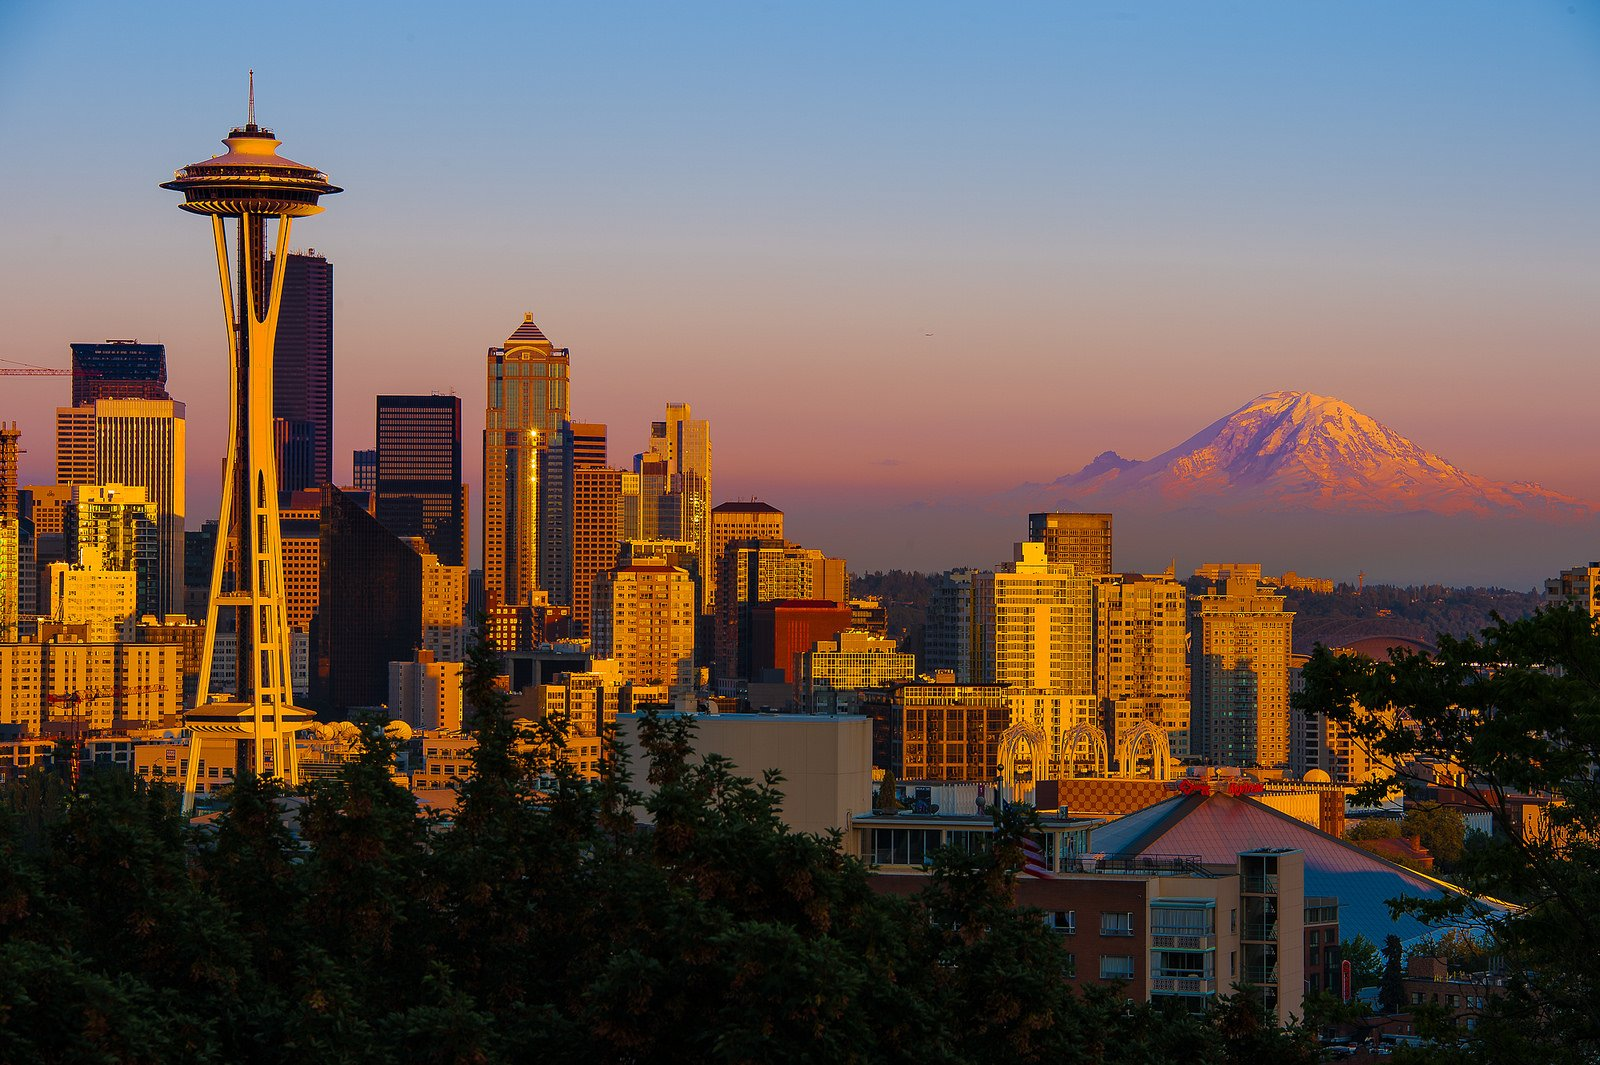 Fall in Love with Seattle: 10 Must-Visit Places in the Emerald City